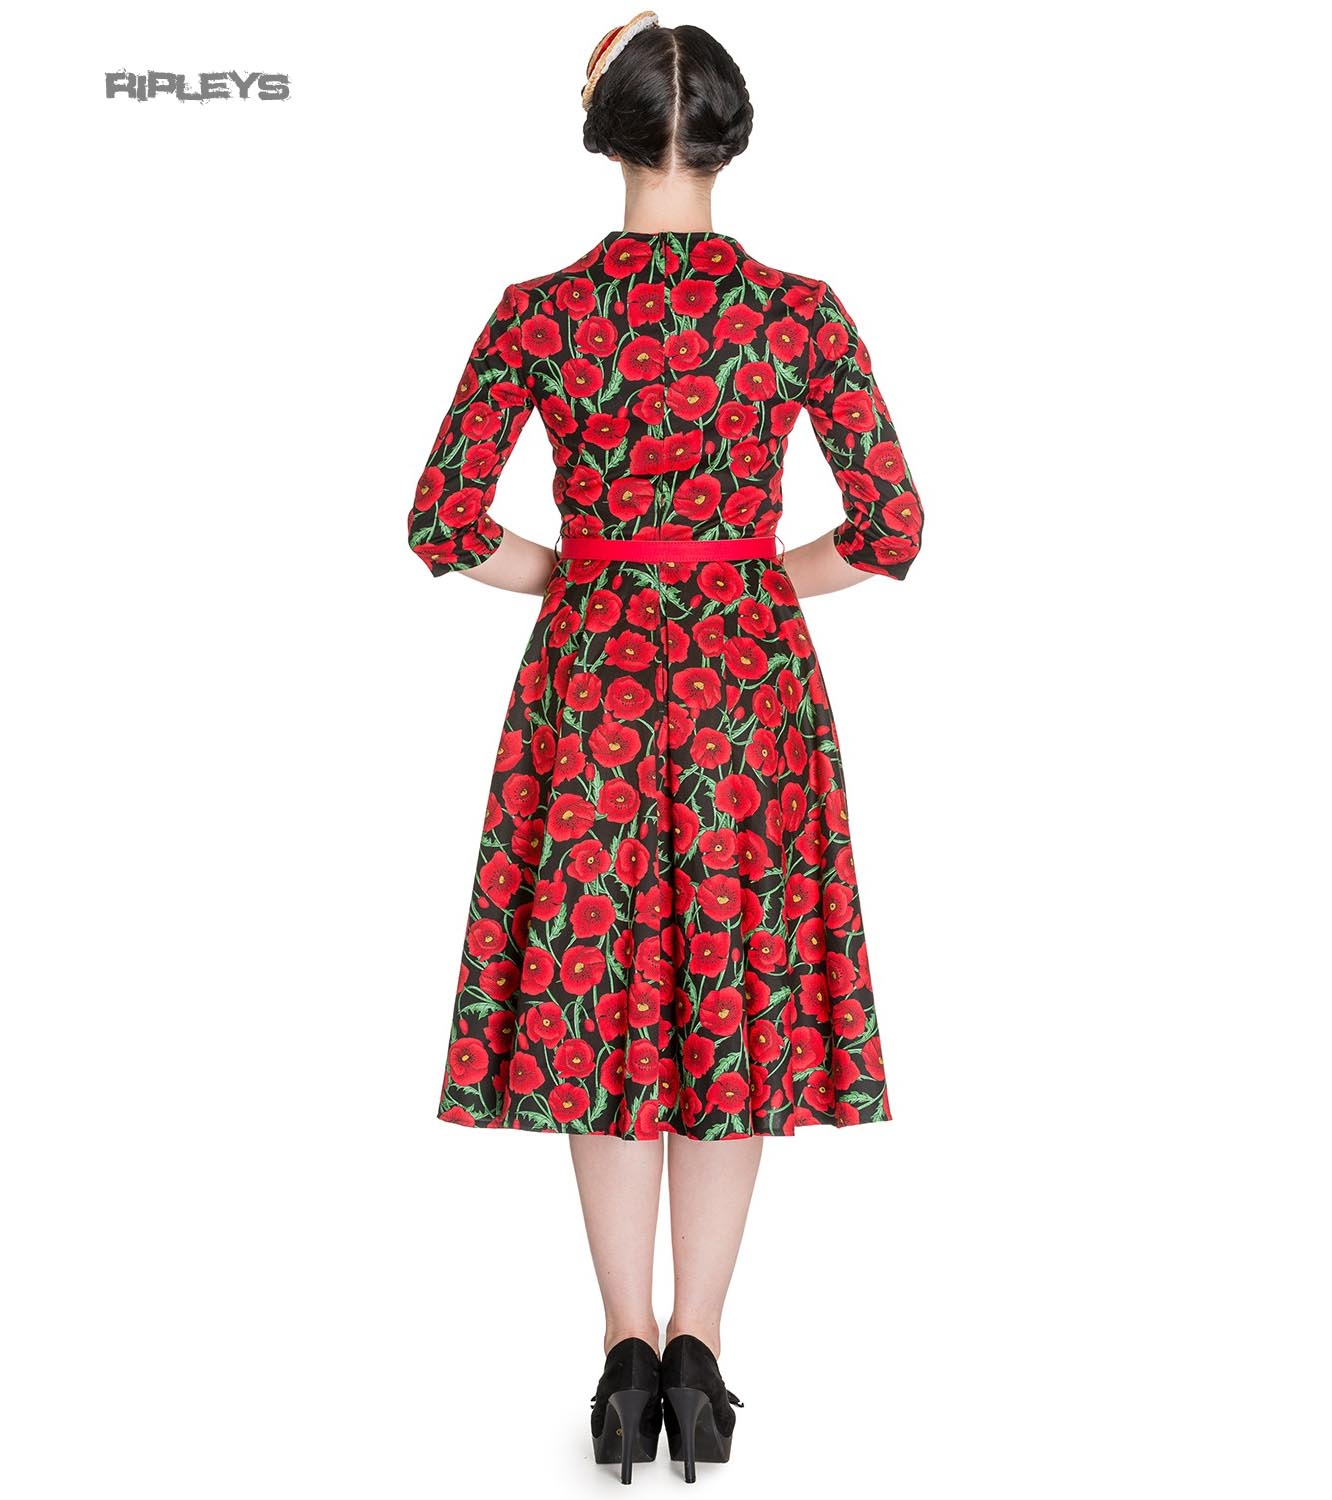 Hell-Bunny-50s-Dress-Pin-Up-POPPY-Red-Black-Flowers-3-4-Sleeve-All-Sizes thumbnail 4